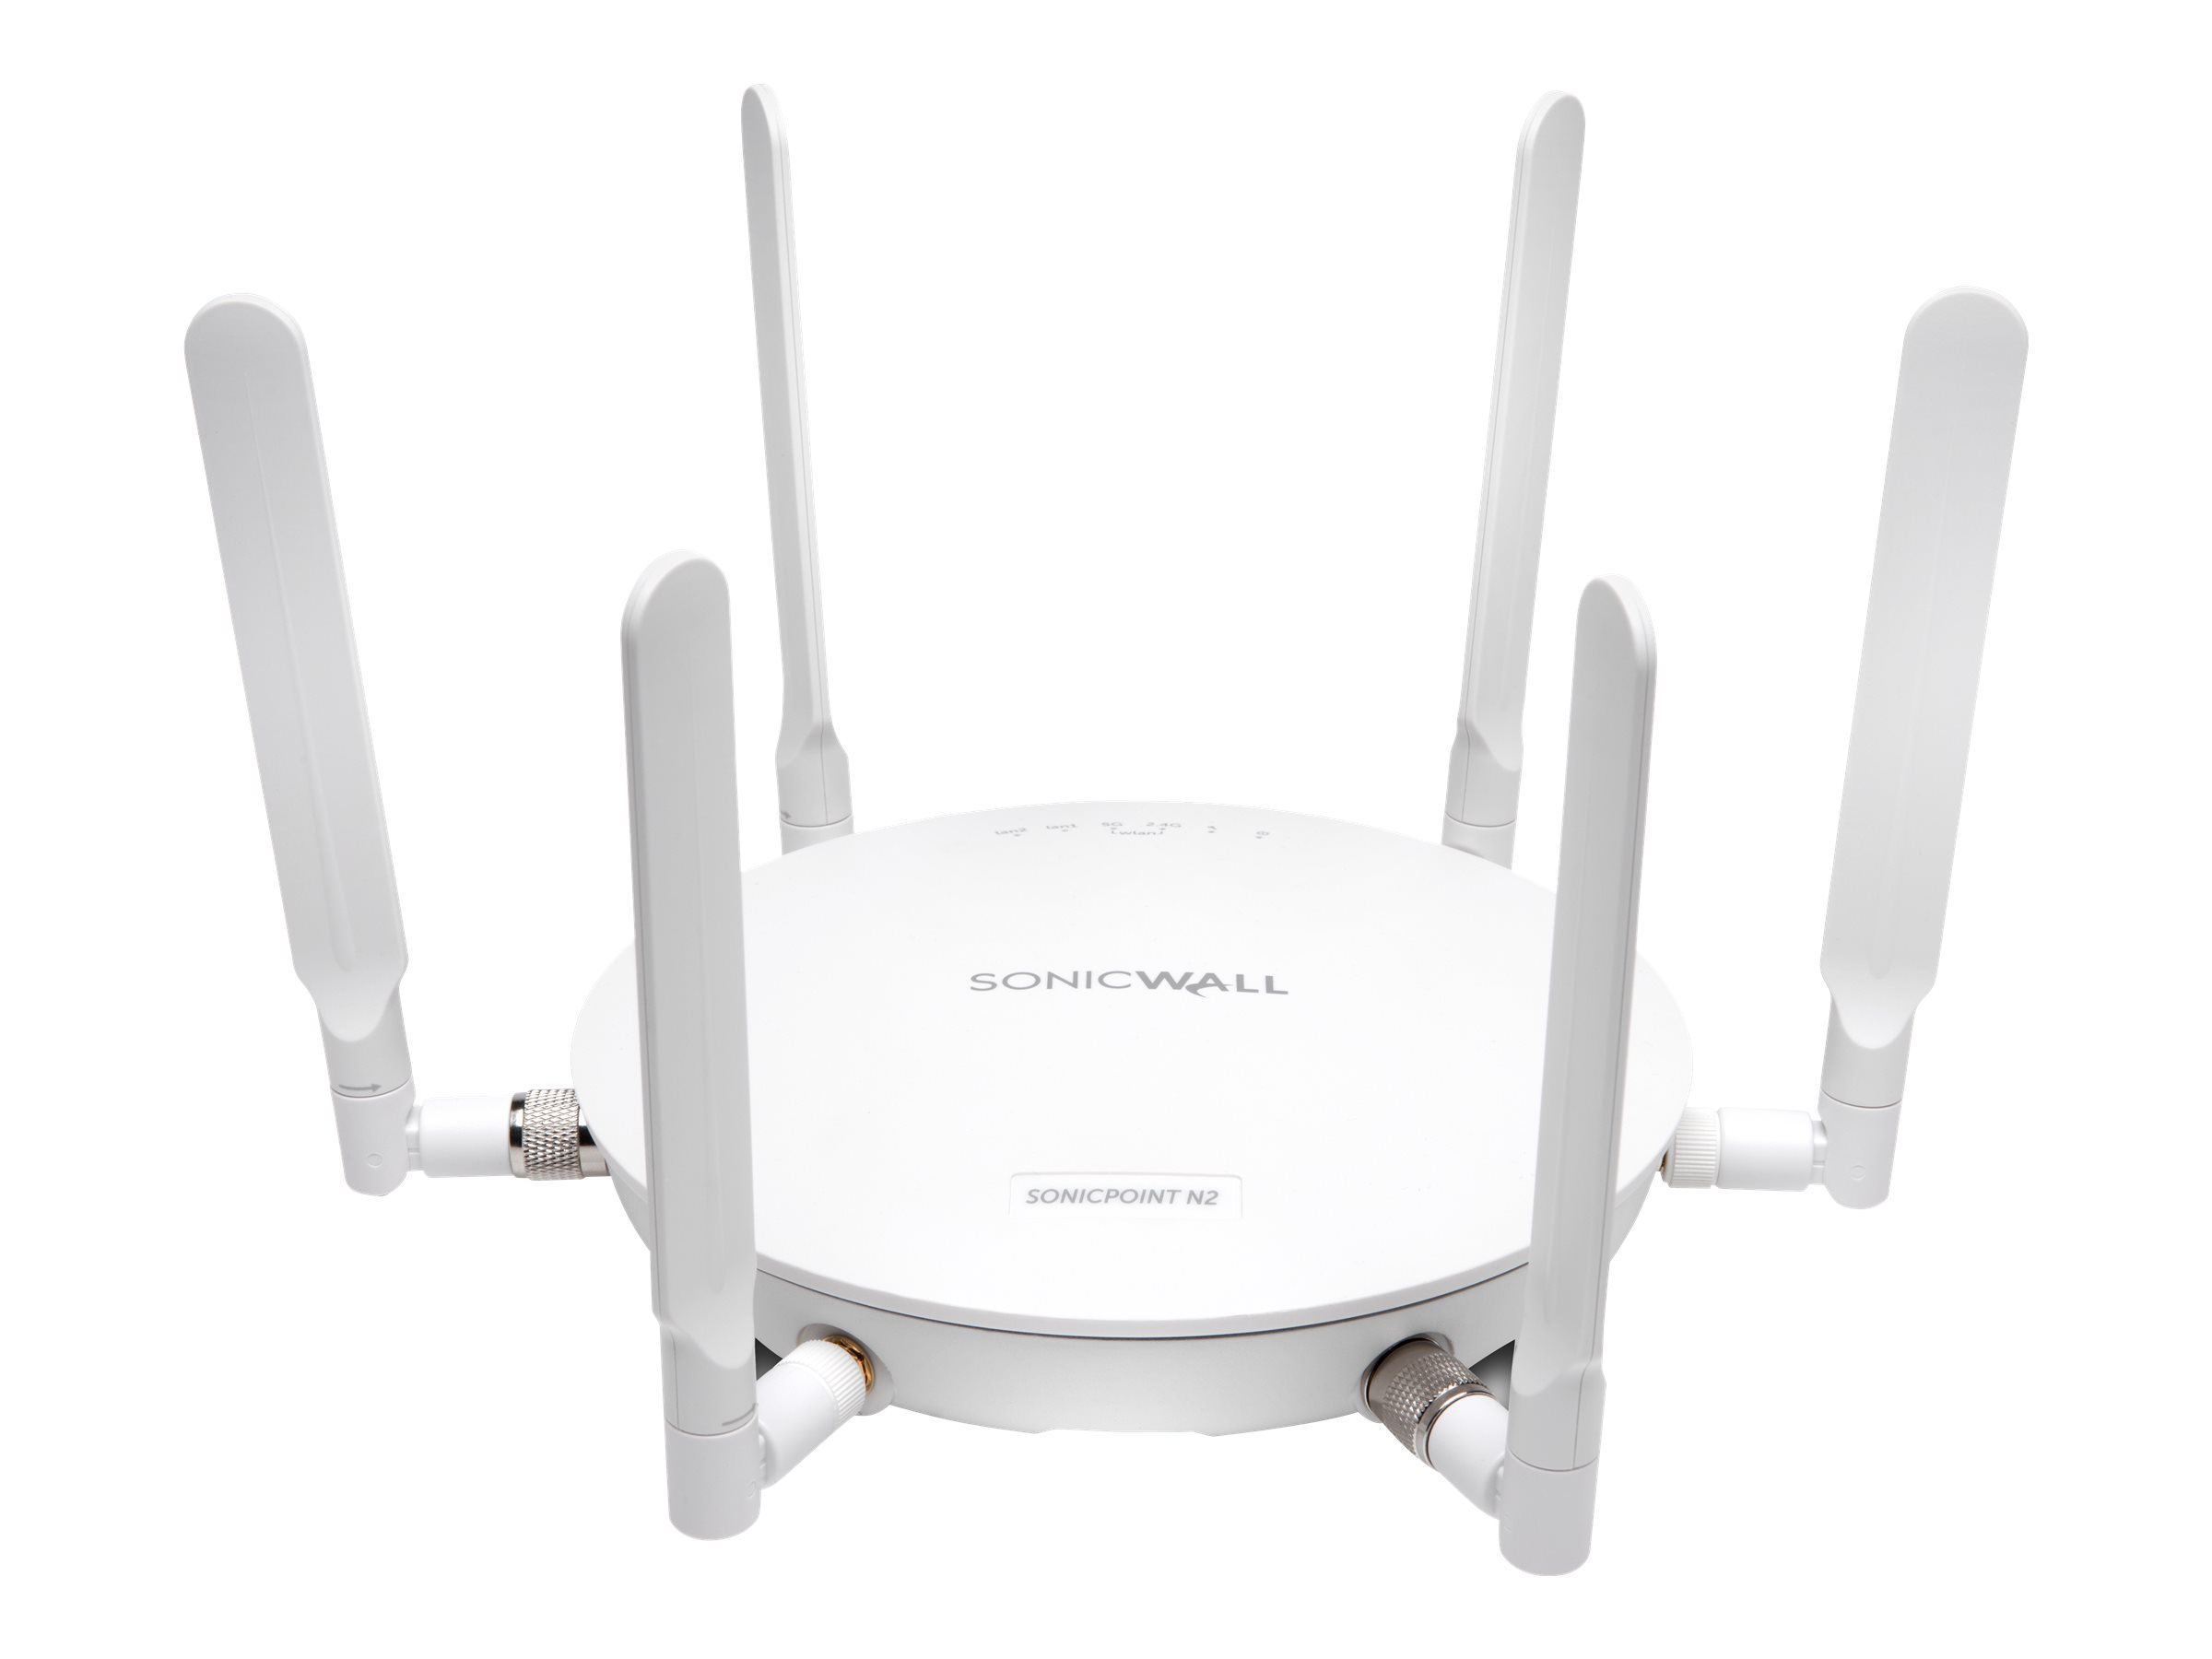 SonicWall SonicPoint N2 - Drahtlose Basisstation - mit Dynamic Support 24X7 für 3 Jahre - Wi-Fi - Dualband - mit SonicWALL 802.3at Gigabit PoE Injector